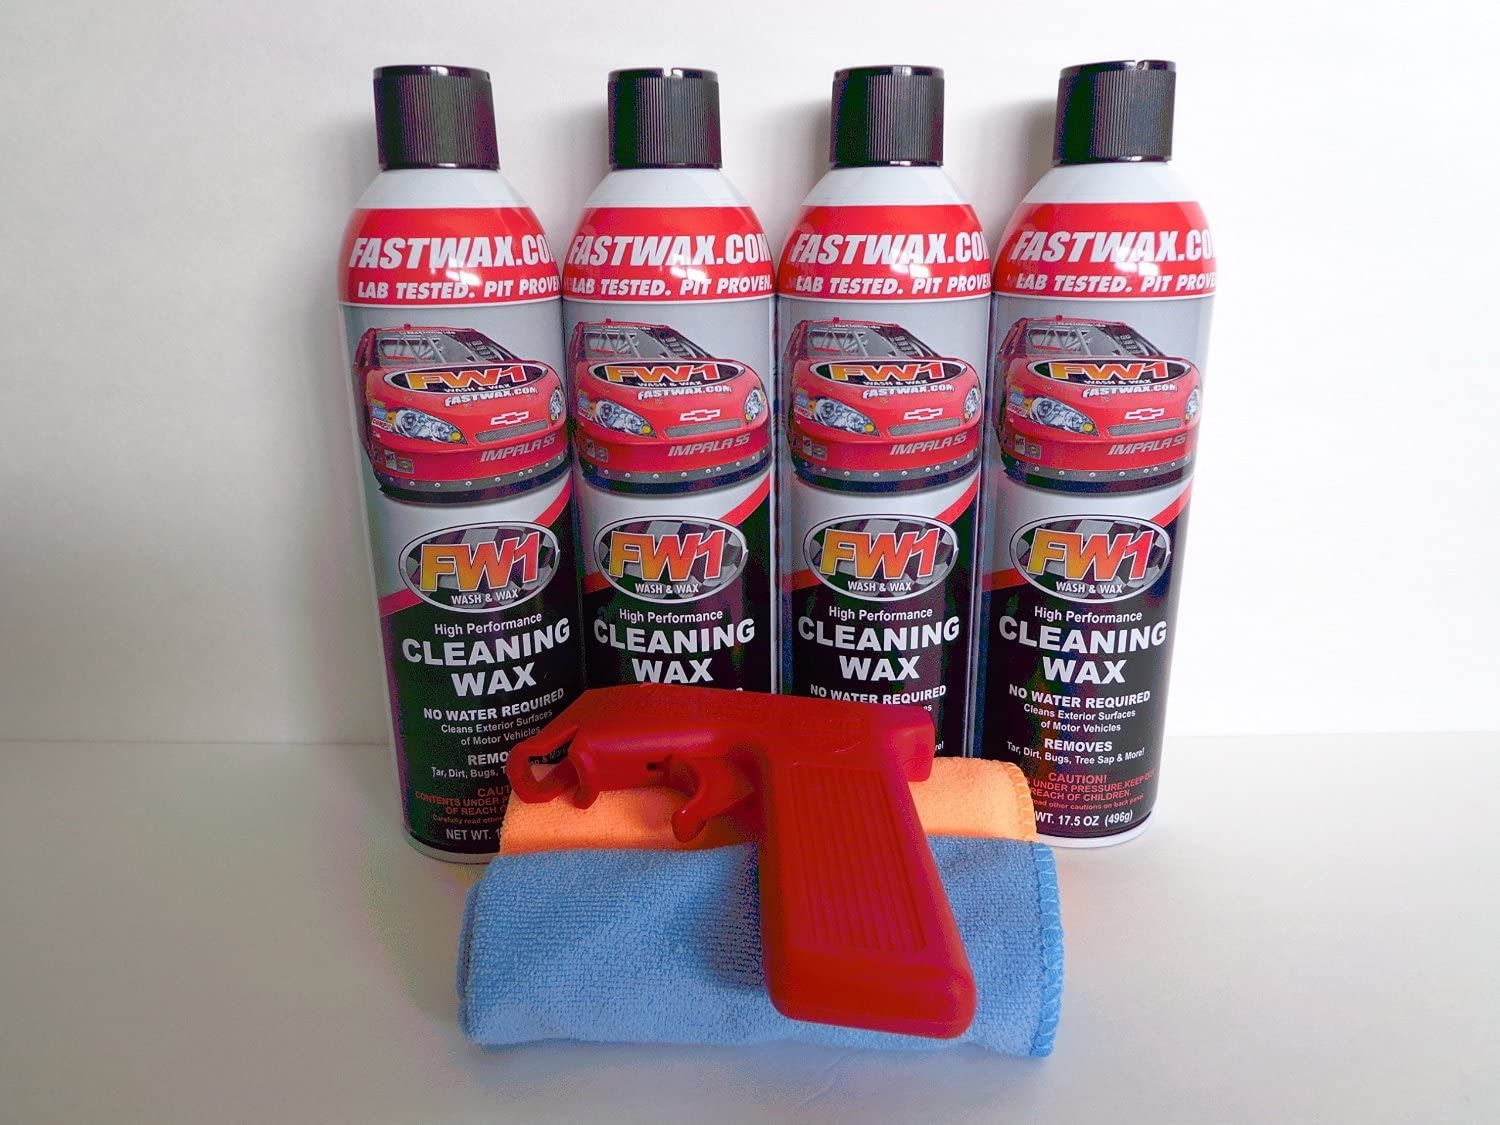 FW1 Wash and Spring new work Wax with Carnauba online shopping Fast 4 by Microfi Pack